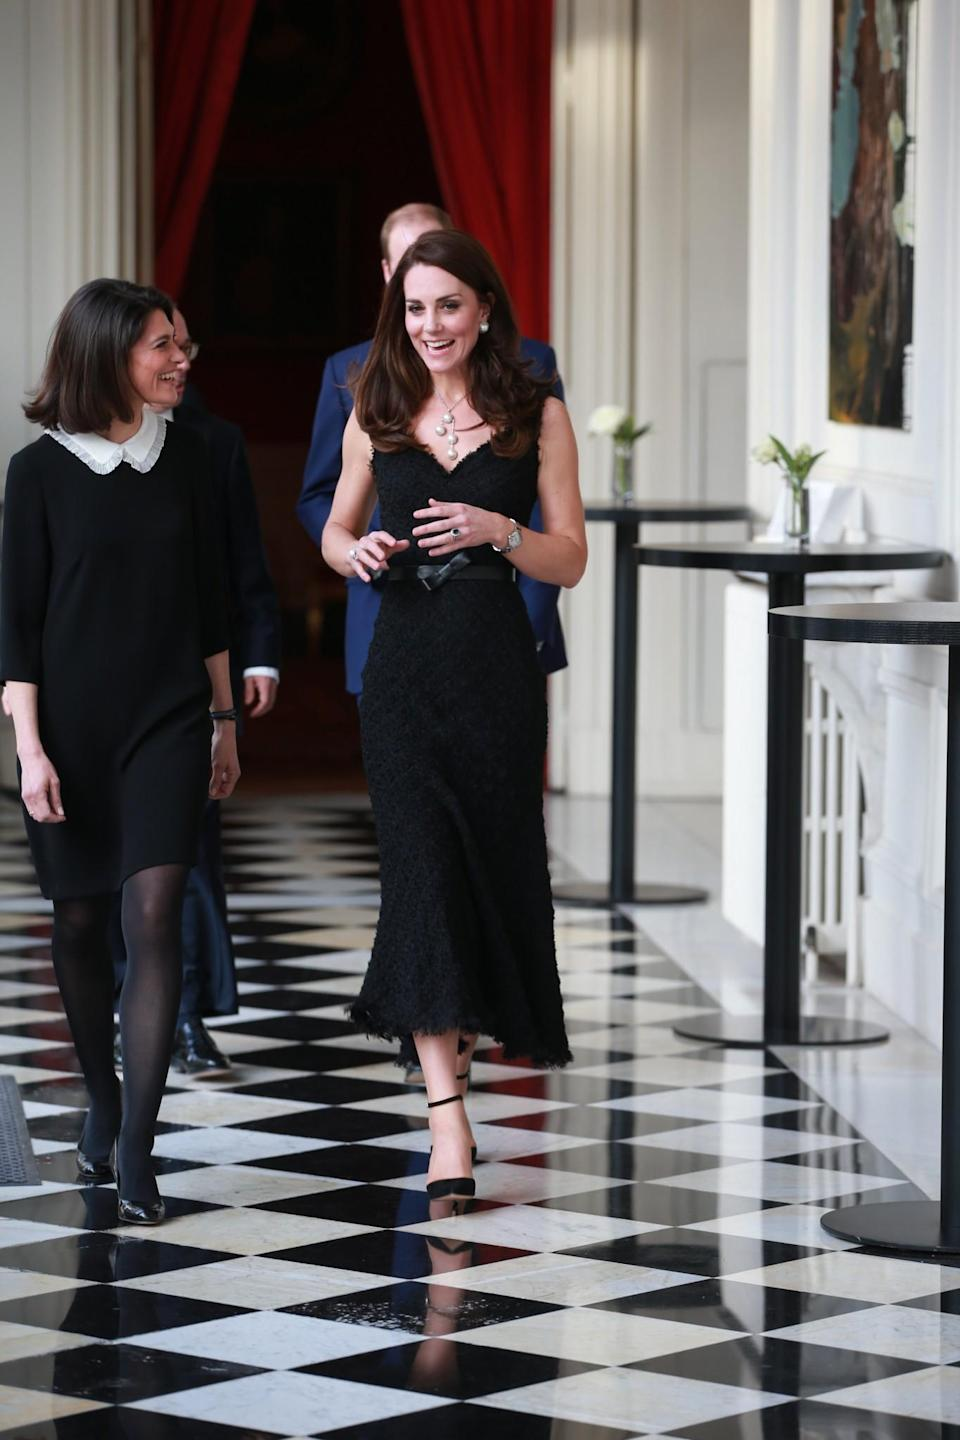 <p>For her arrival in Paris, Kate chose a textured black dress by trusted British label, Alexander McQueen. It was one of the few sleeveless designs the Duchess has donned over the years and appeared to be made from a fringed lace fabric. Kate's jewellery could not be ignored. Huge pearl Balenciaga earrings and a stand-out matching necklace added a nice touch to the elegant look which was finished off with suede Gianvito Rossi heels.<br><i>[Photo: PA]</i> </p>